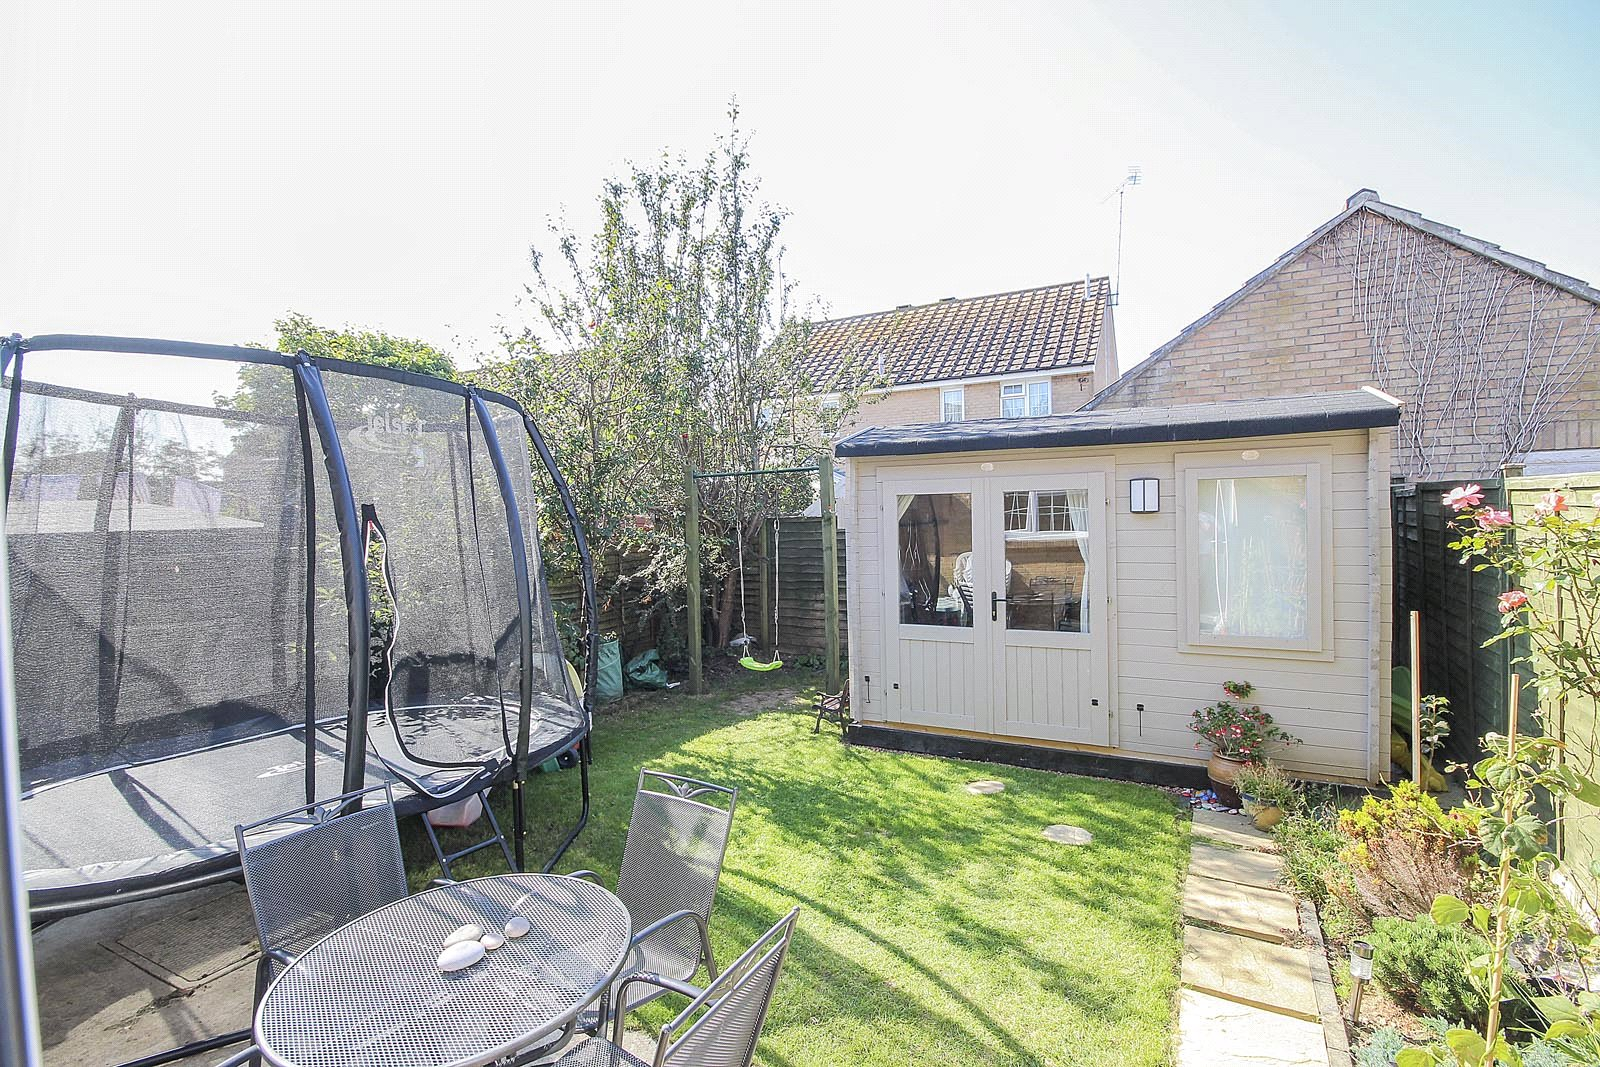 3 bed house for sale in Carvel Way, Littlehampton 10